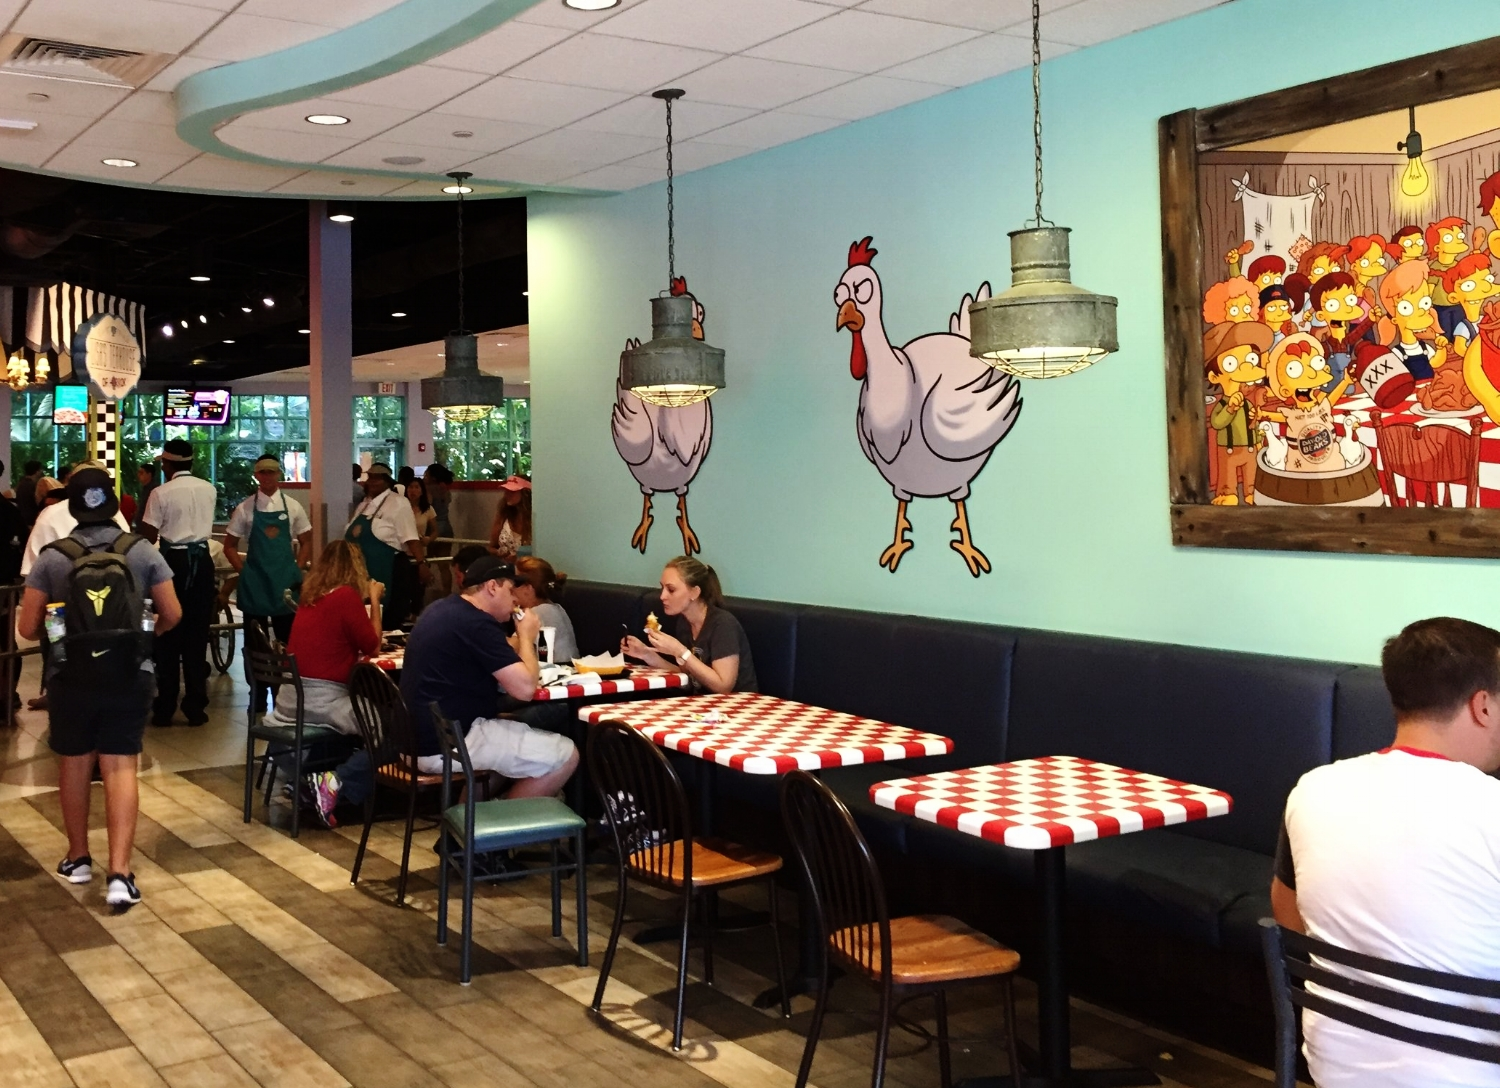 Part of the dining area in Krusty Burger is themed for Cletus' Chicken Shack.